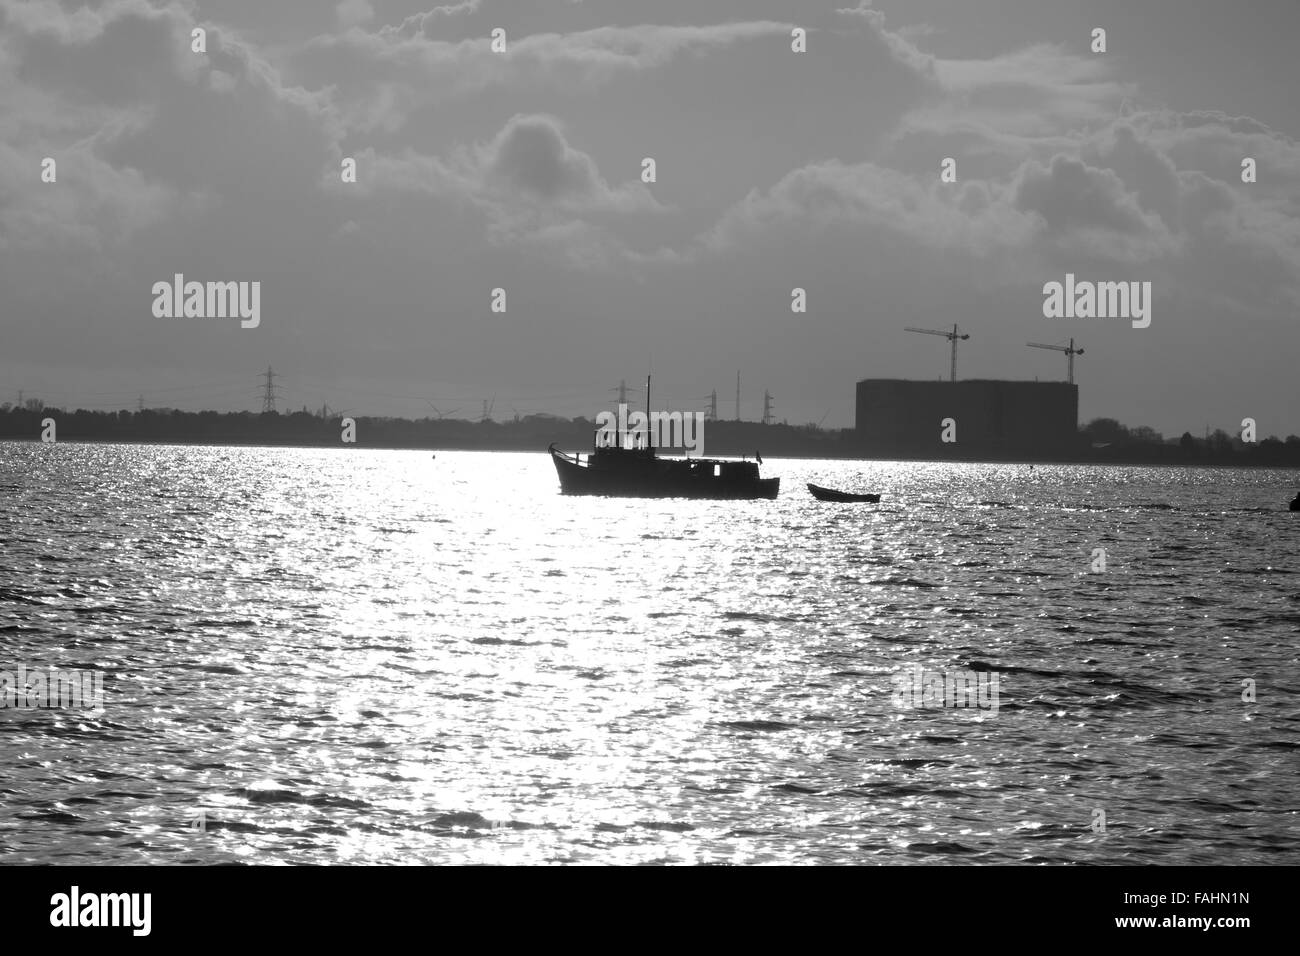 A small fishing boat in silhouette and black and white sailing in front of Bradwell power station - Stock Image